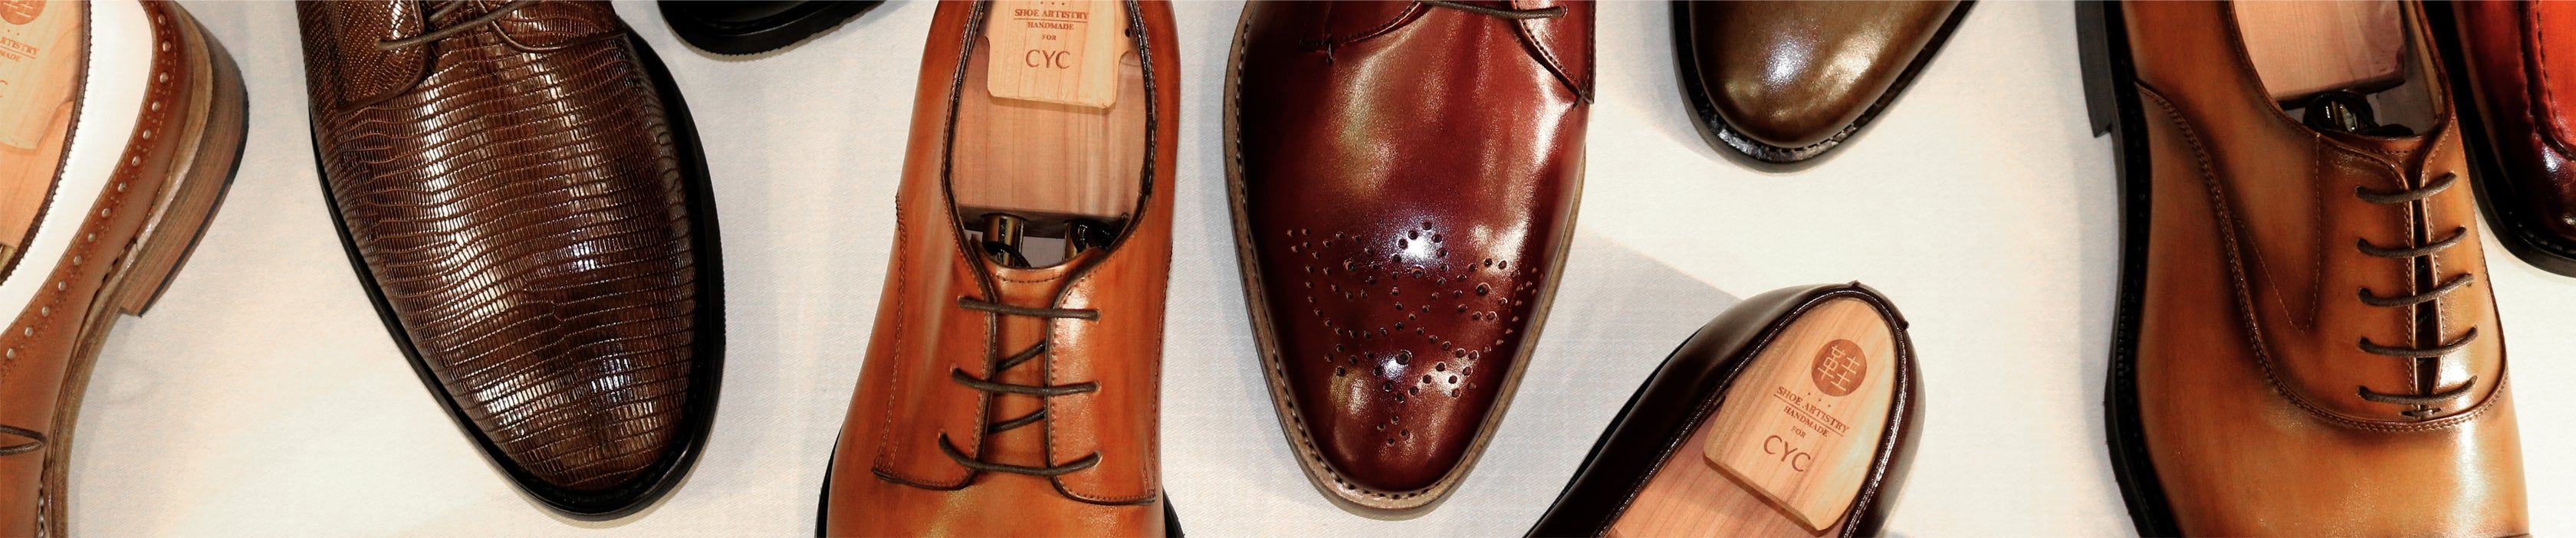 CYC x Shoe Artistry Bespoke Leather Shoes